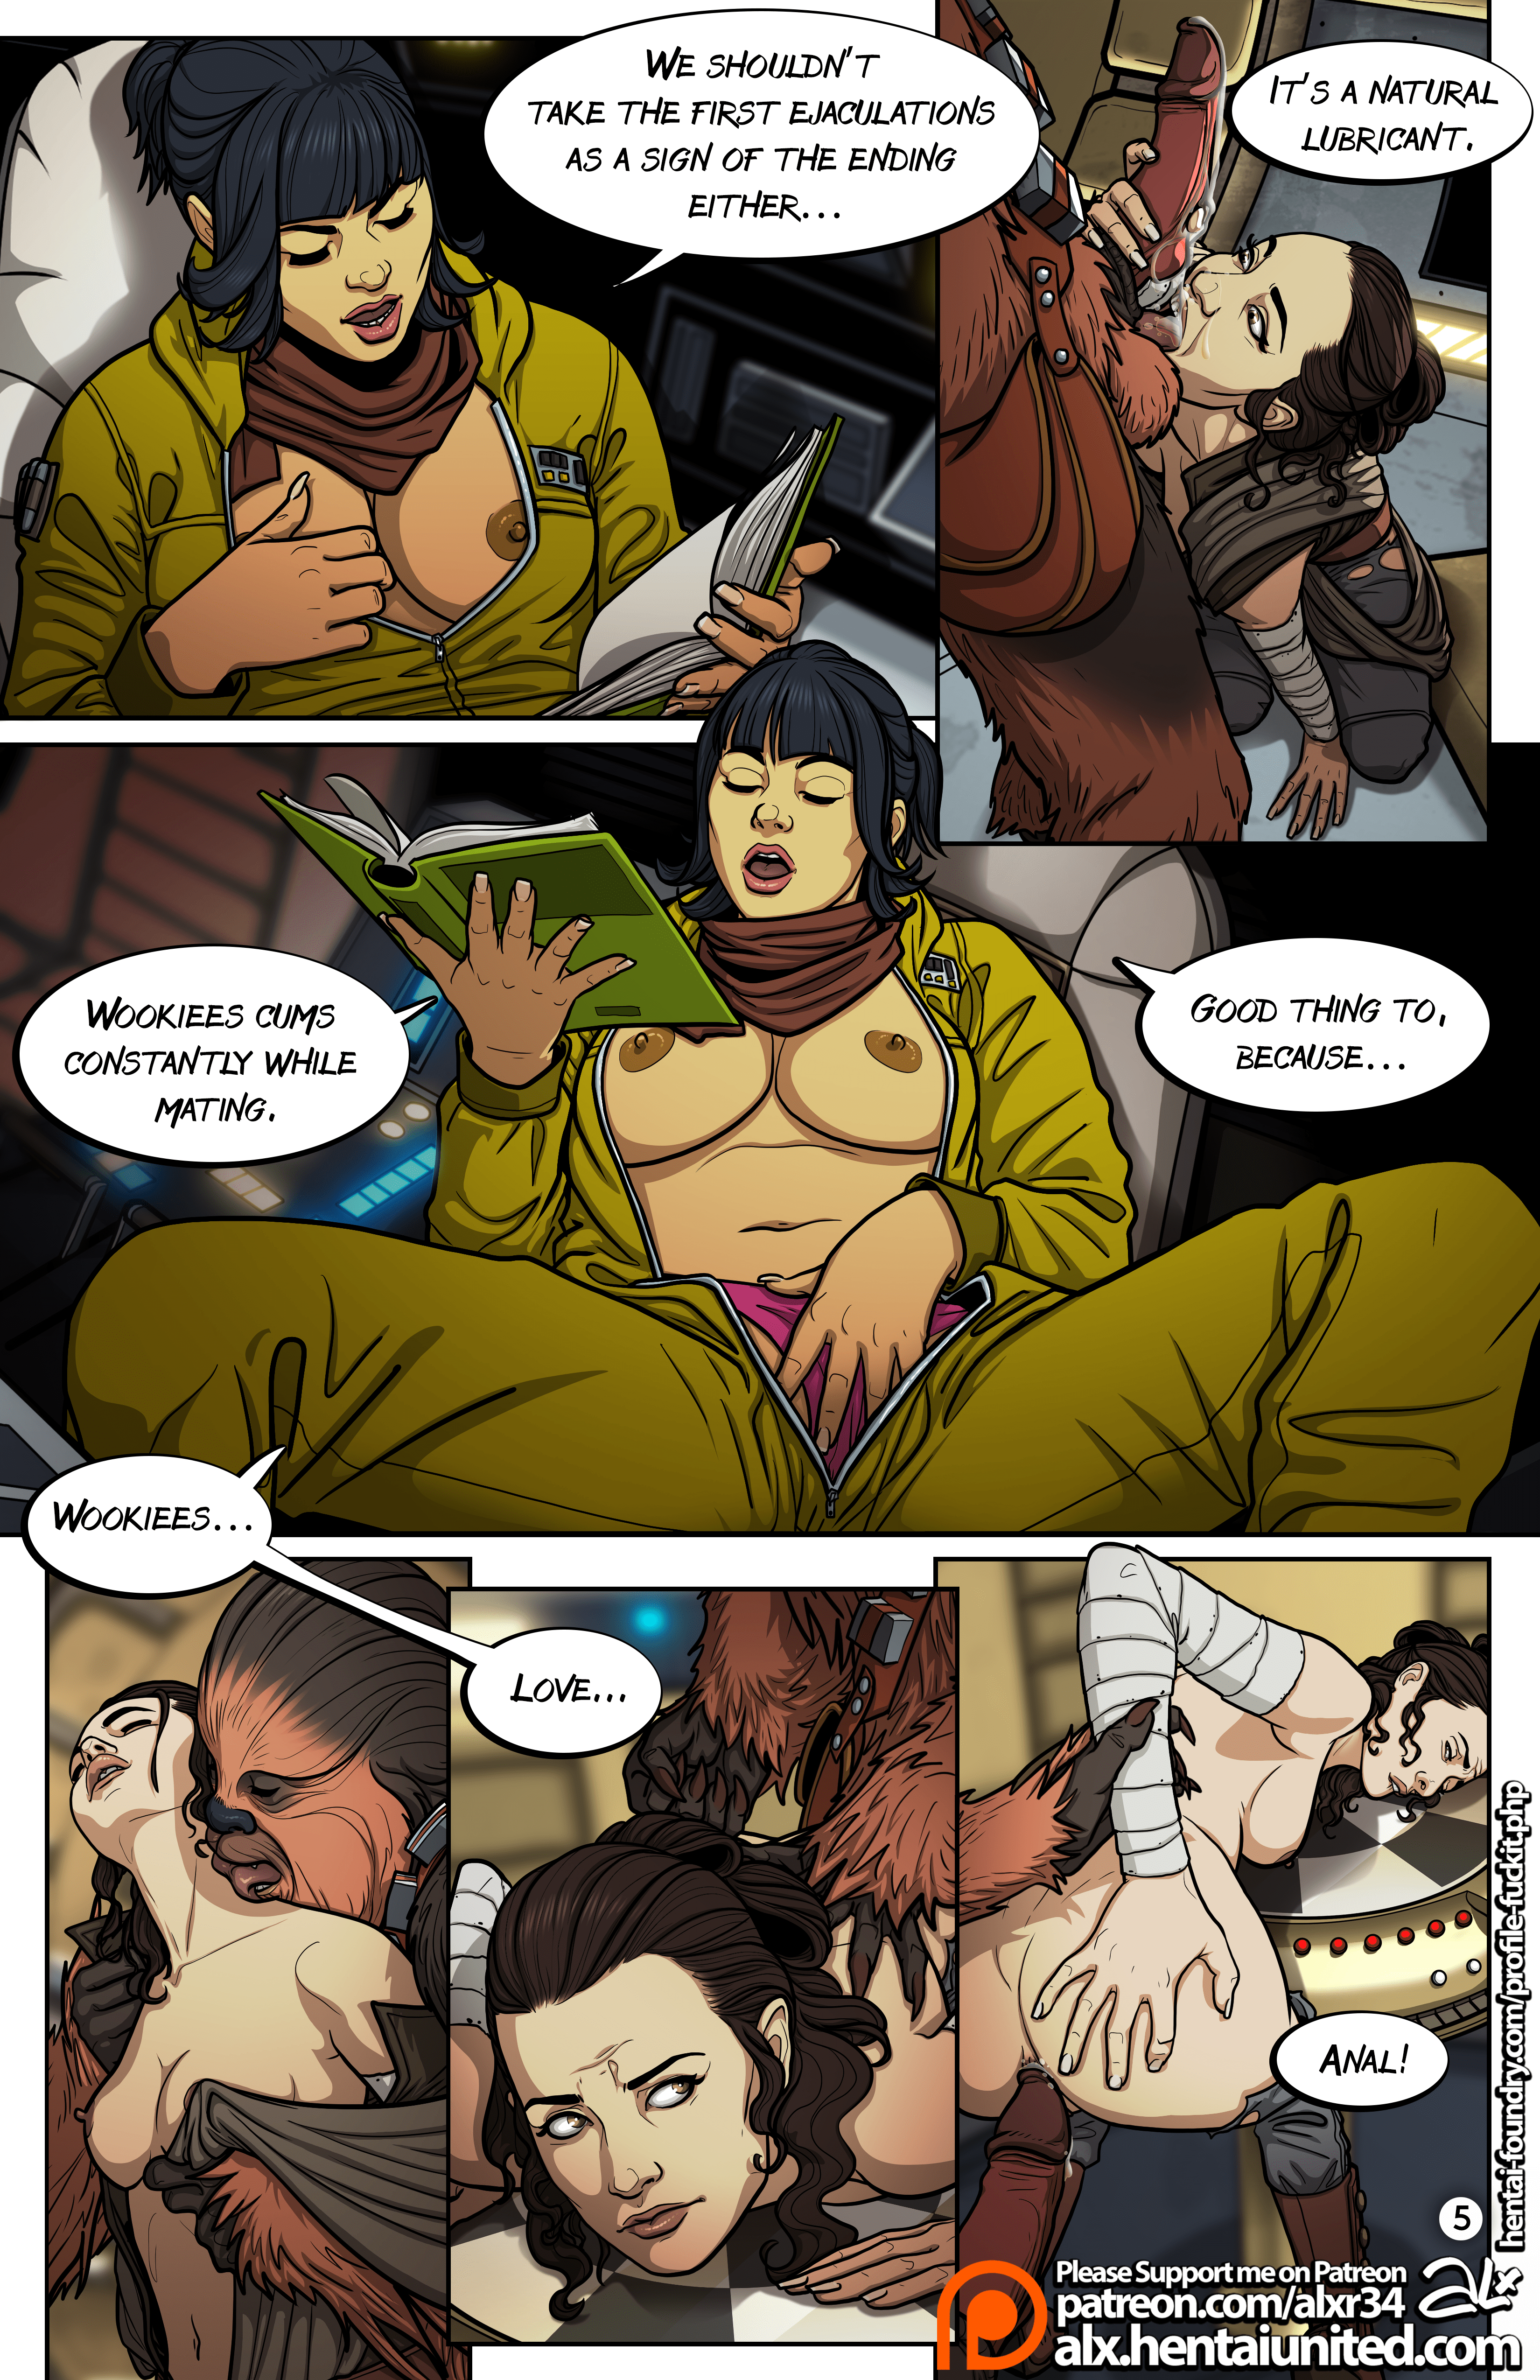 All Anime Porn Comic star wars a complete guide to wookie sex parody sex comics